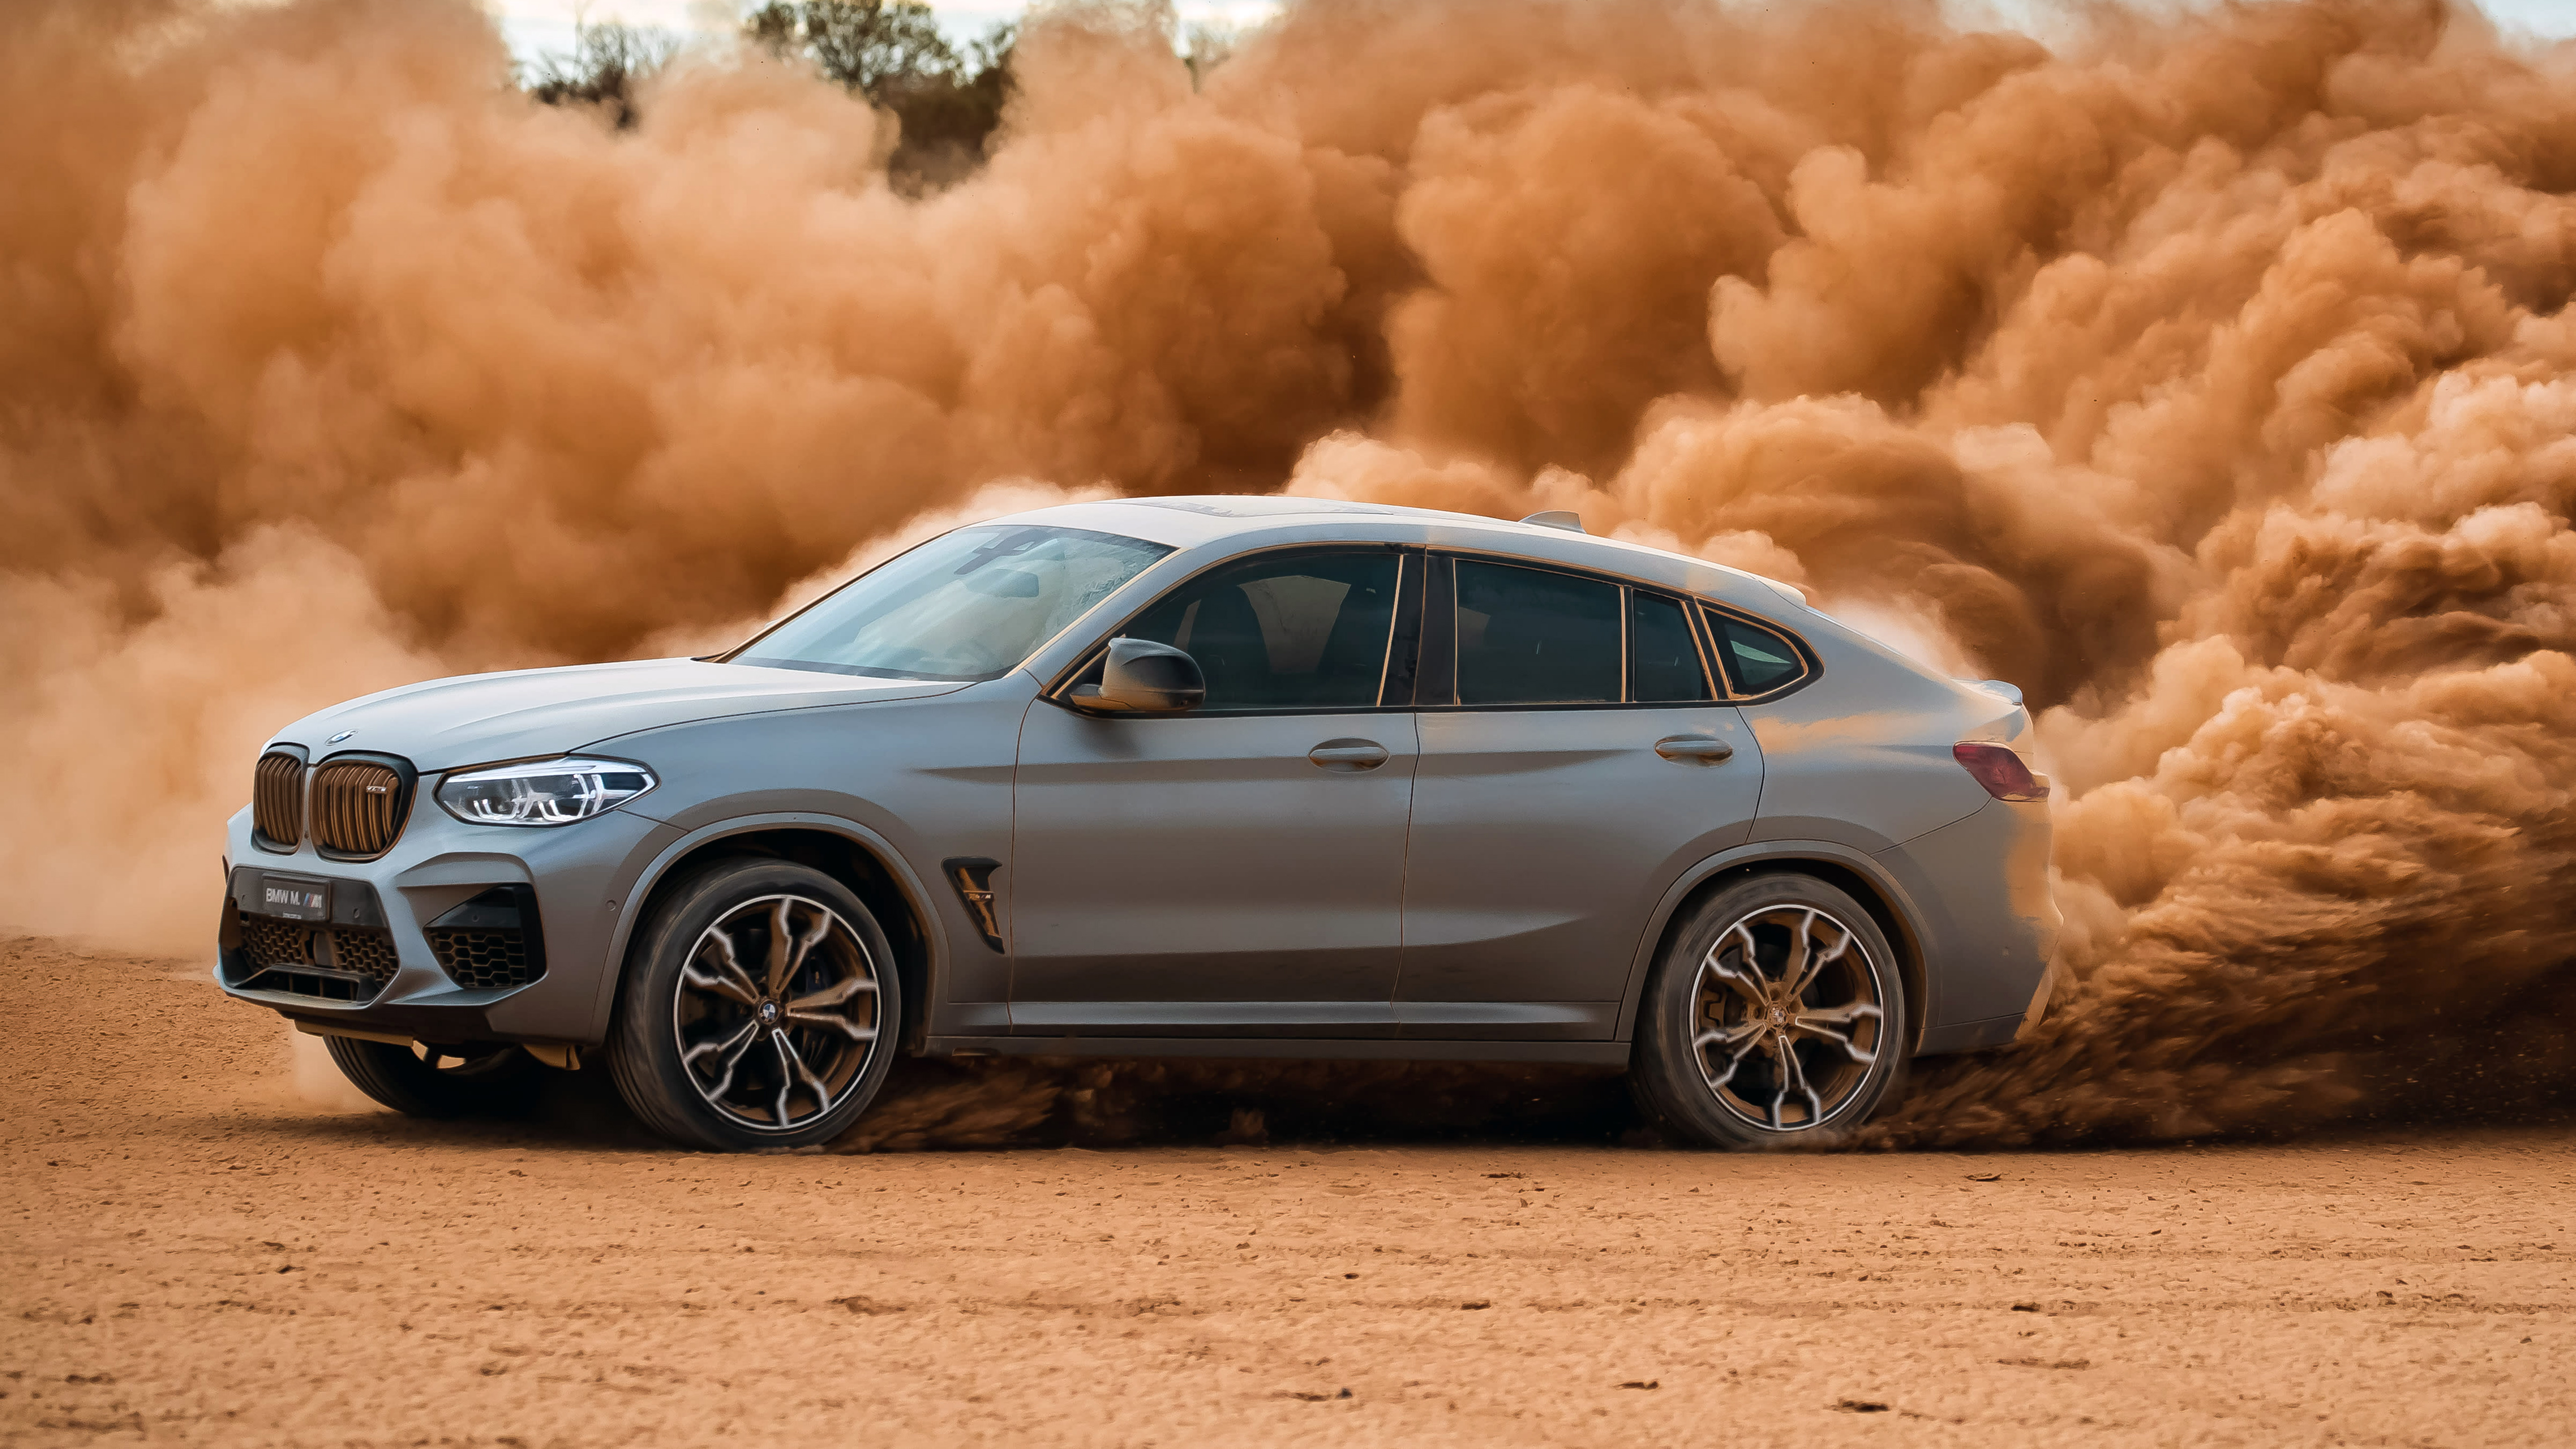 Bmw X4 M Competition 2019 4k Wallpaper Hd Car Wallpapers Id 13824